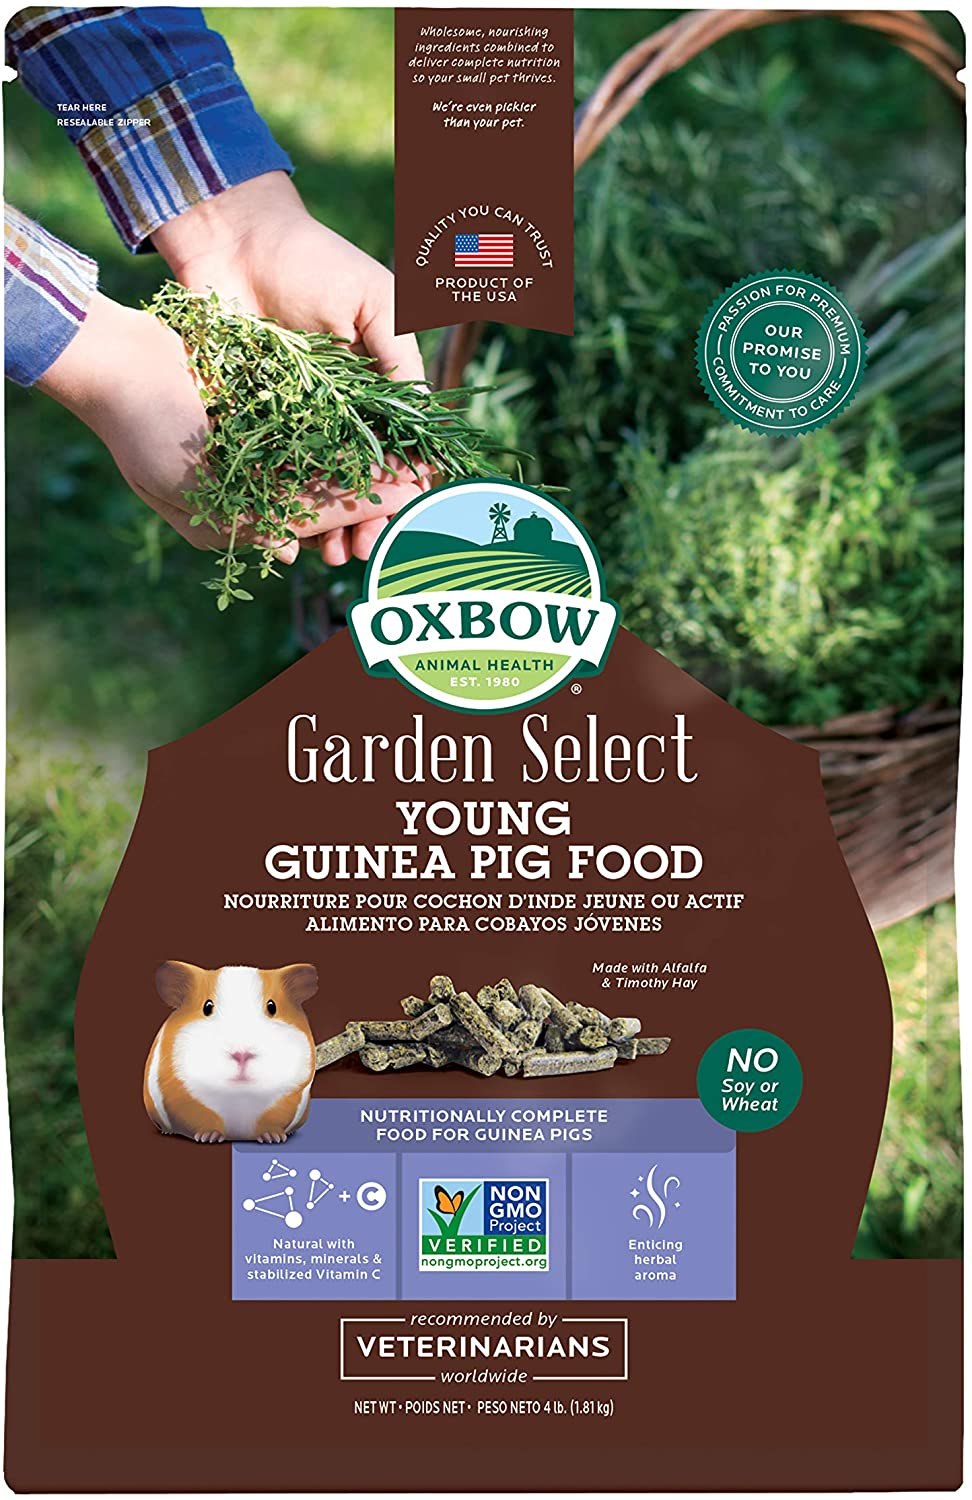 Oxbow Garden Select Young Guinea Pig Food 4 lb